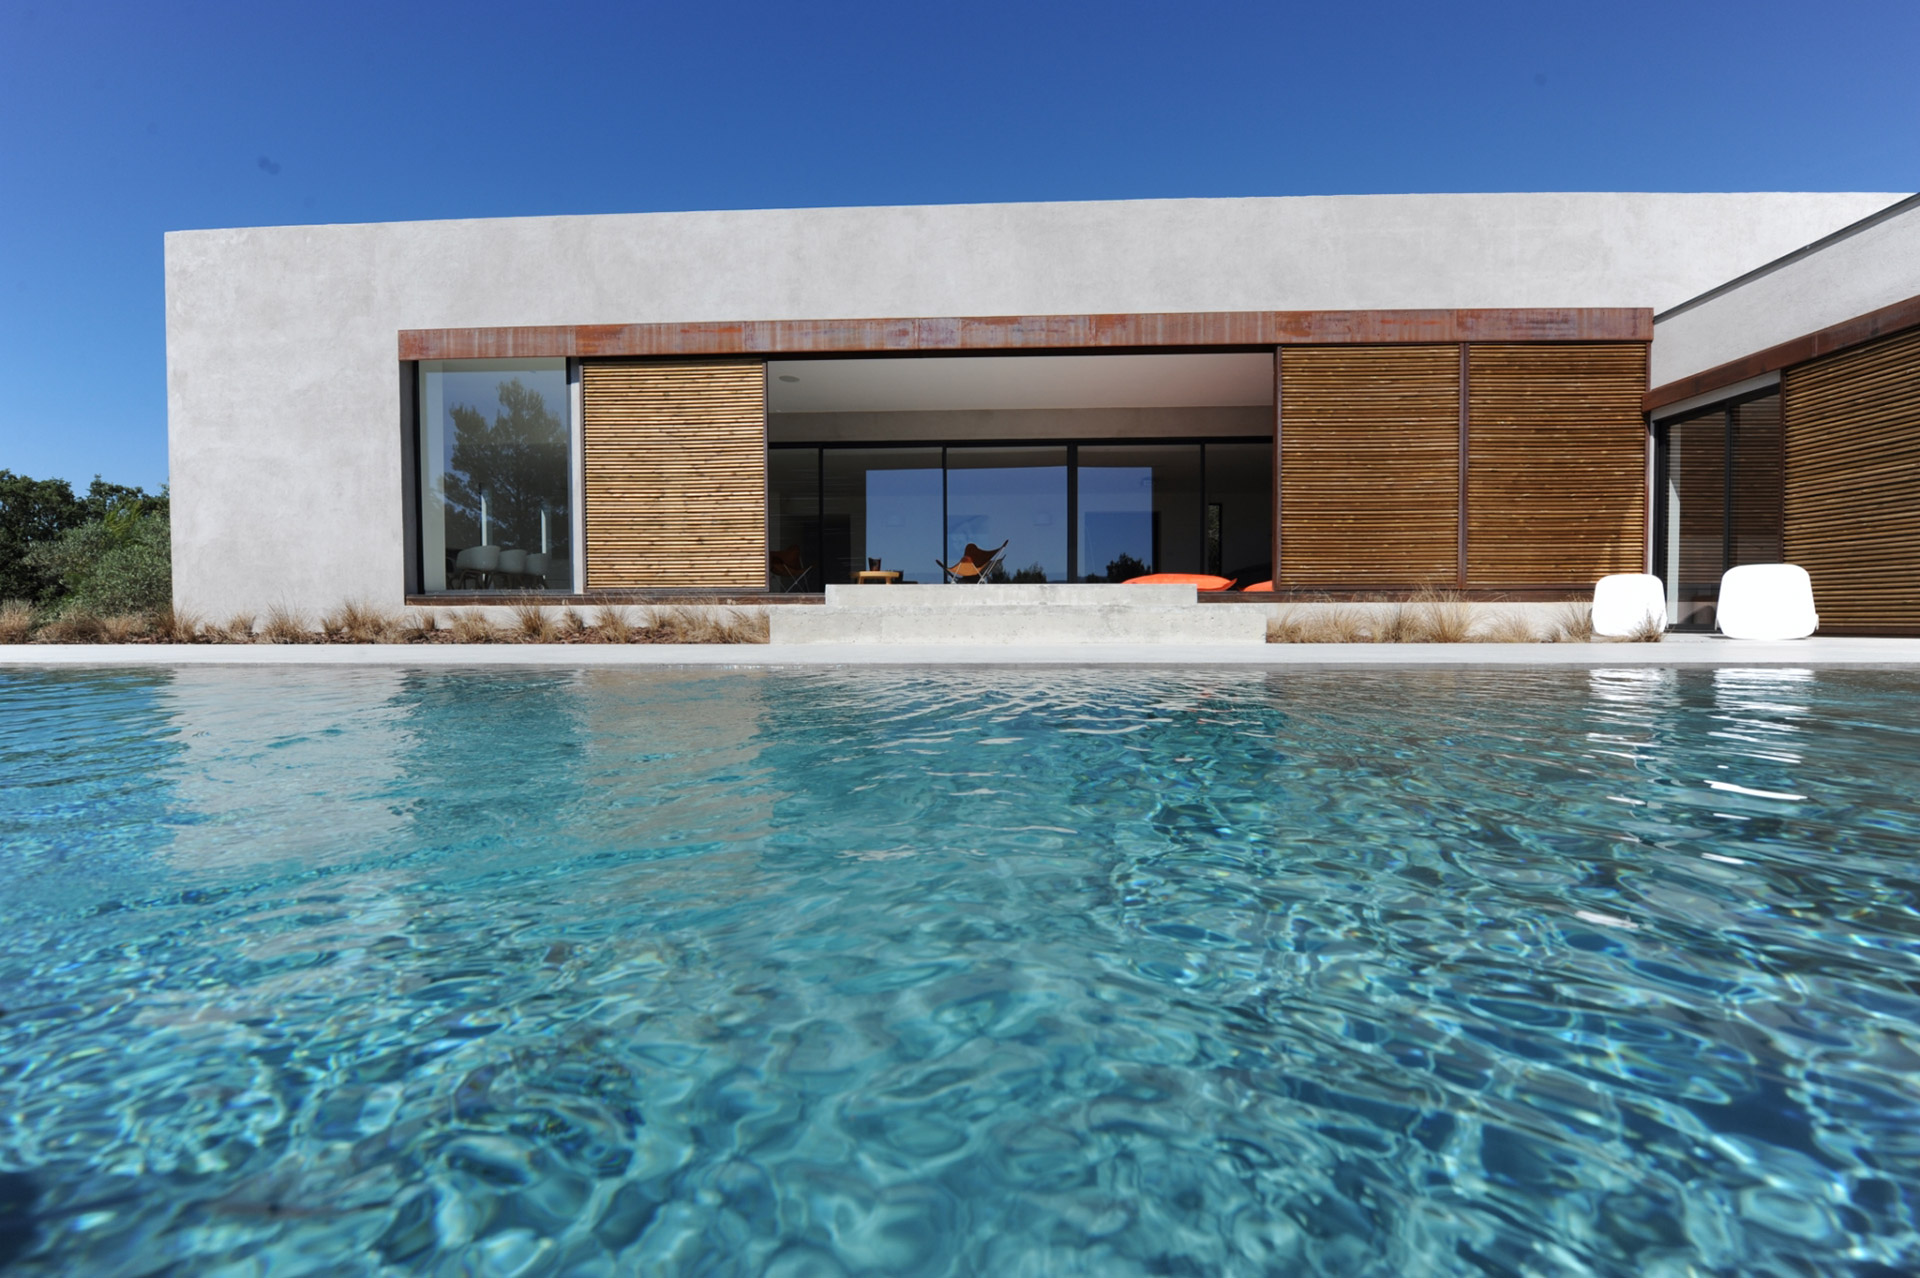 Ventes a vendre au coeur du luberon maison contemporaine for Piscine de france